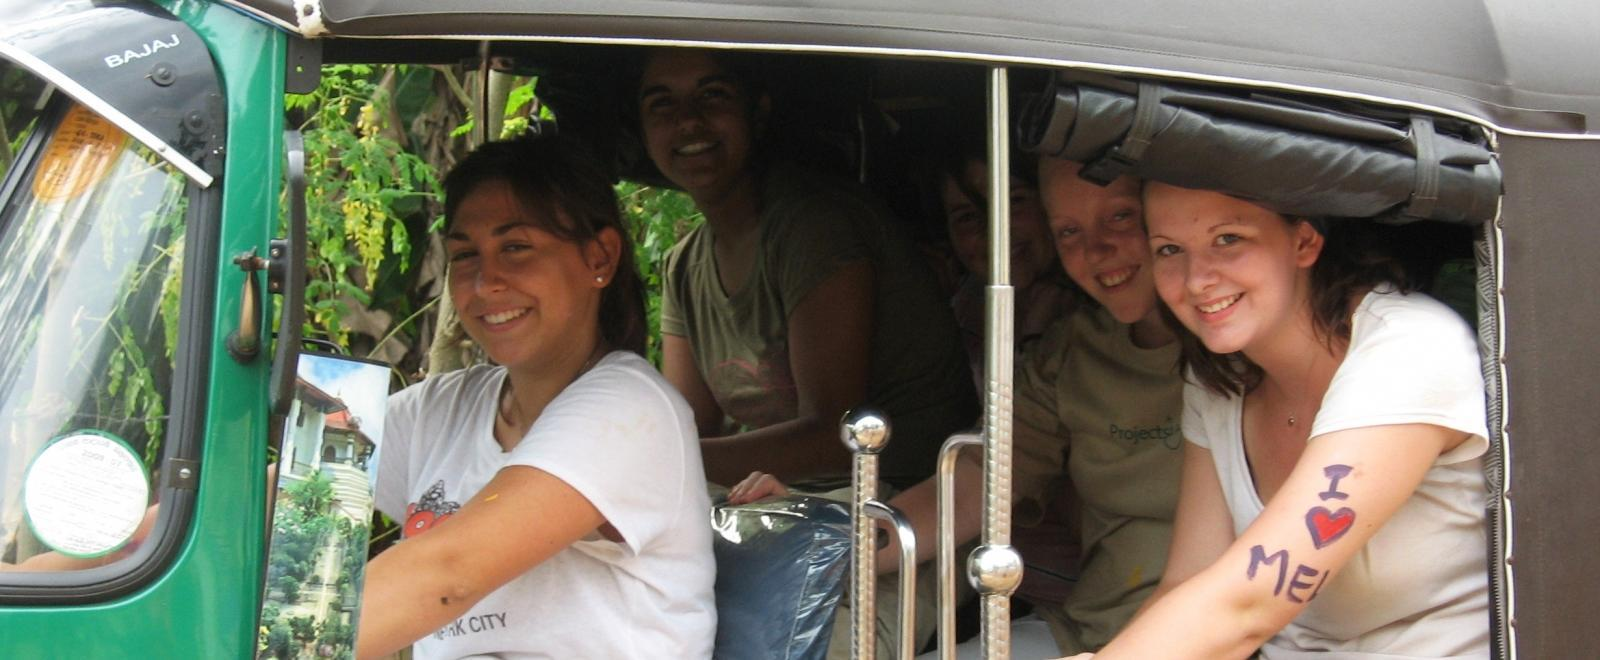 Voluntarios de Projects Abroad paseando en Sri Lanka en un tuk tuk.